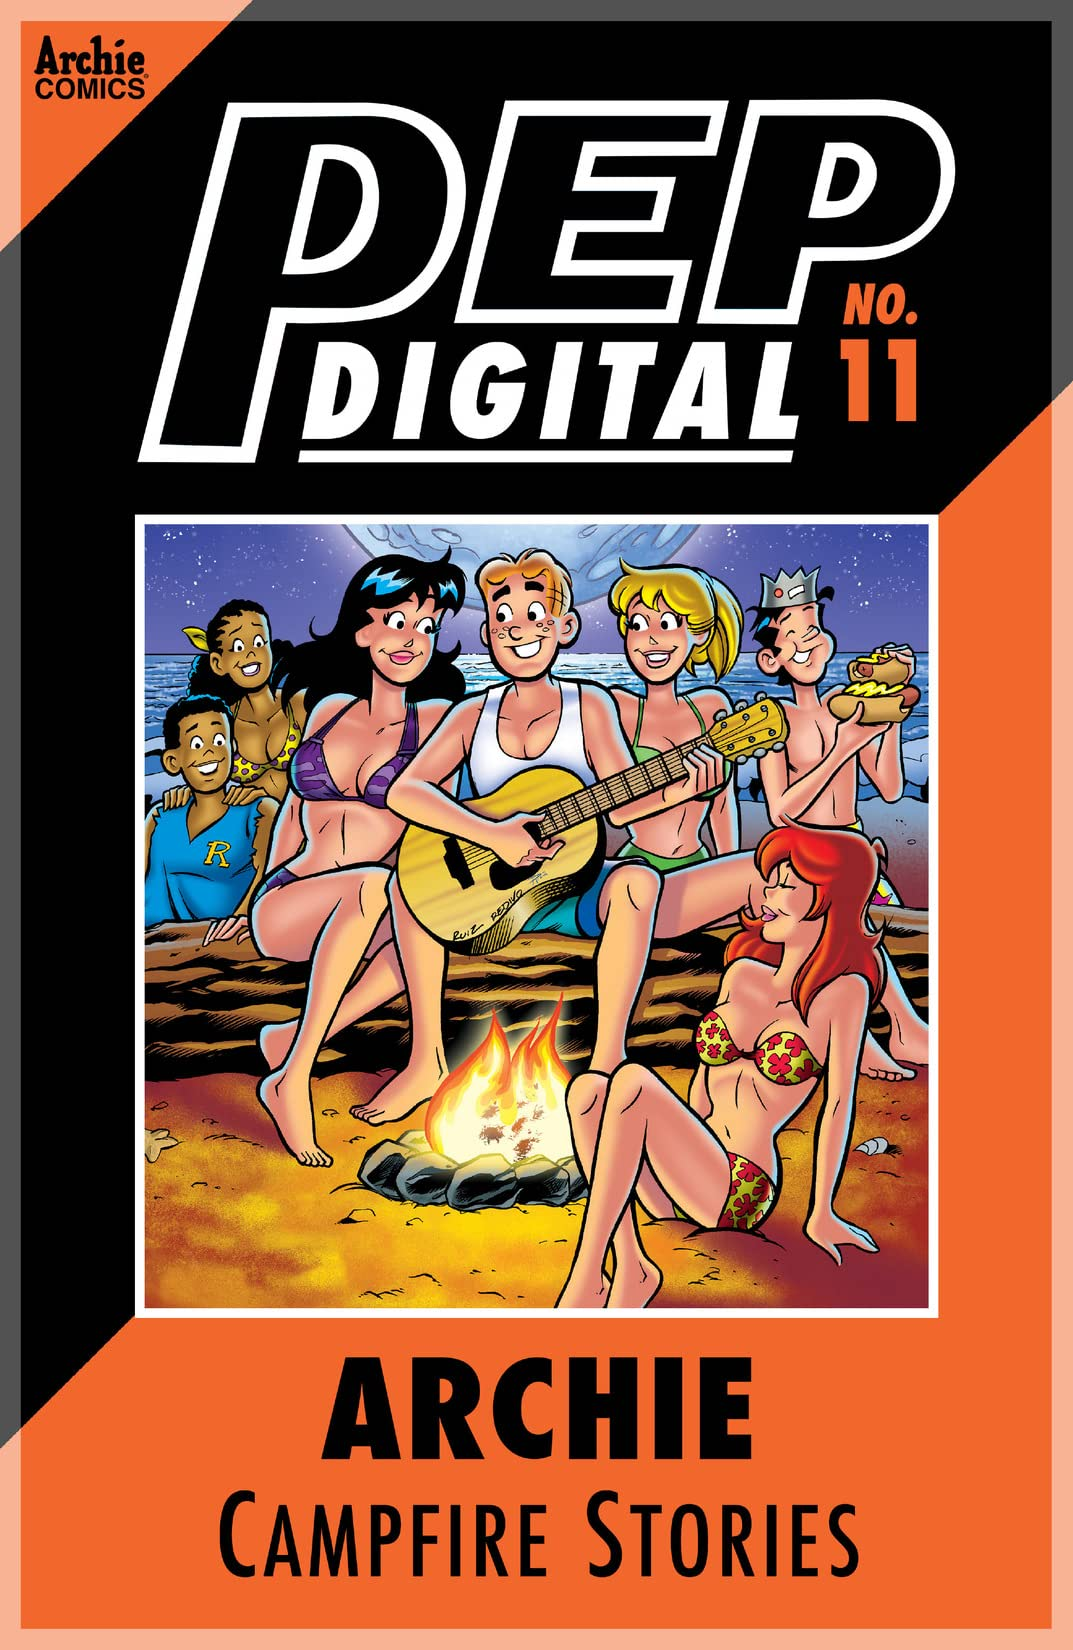 PEP Digital #11: Archie Campfire Stories